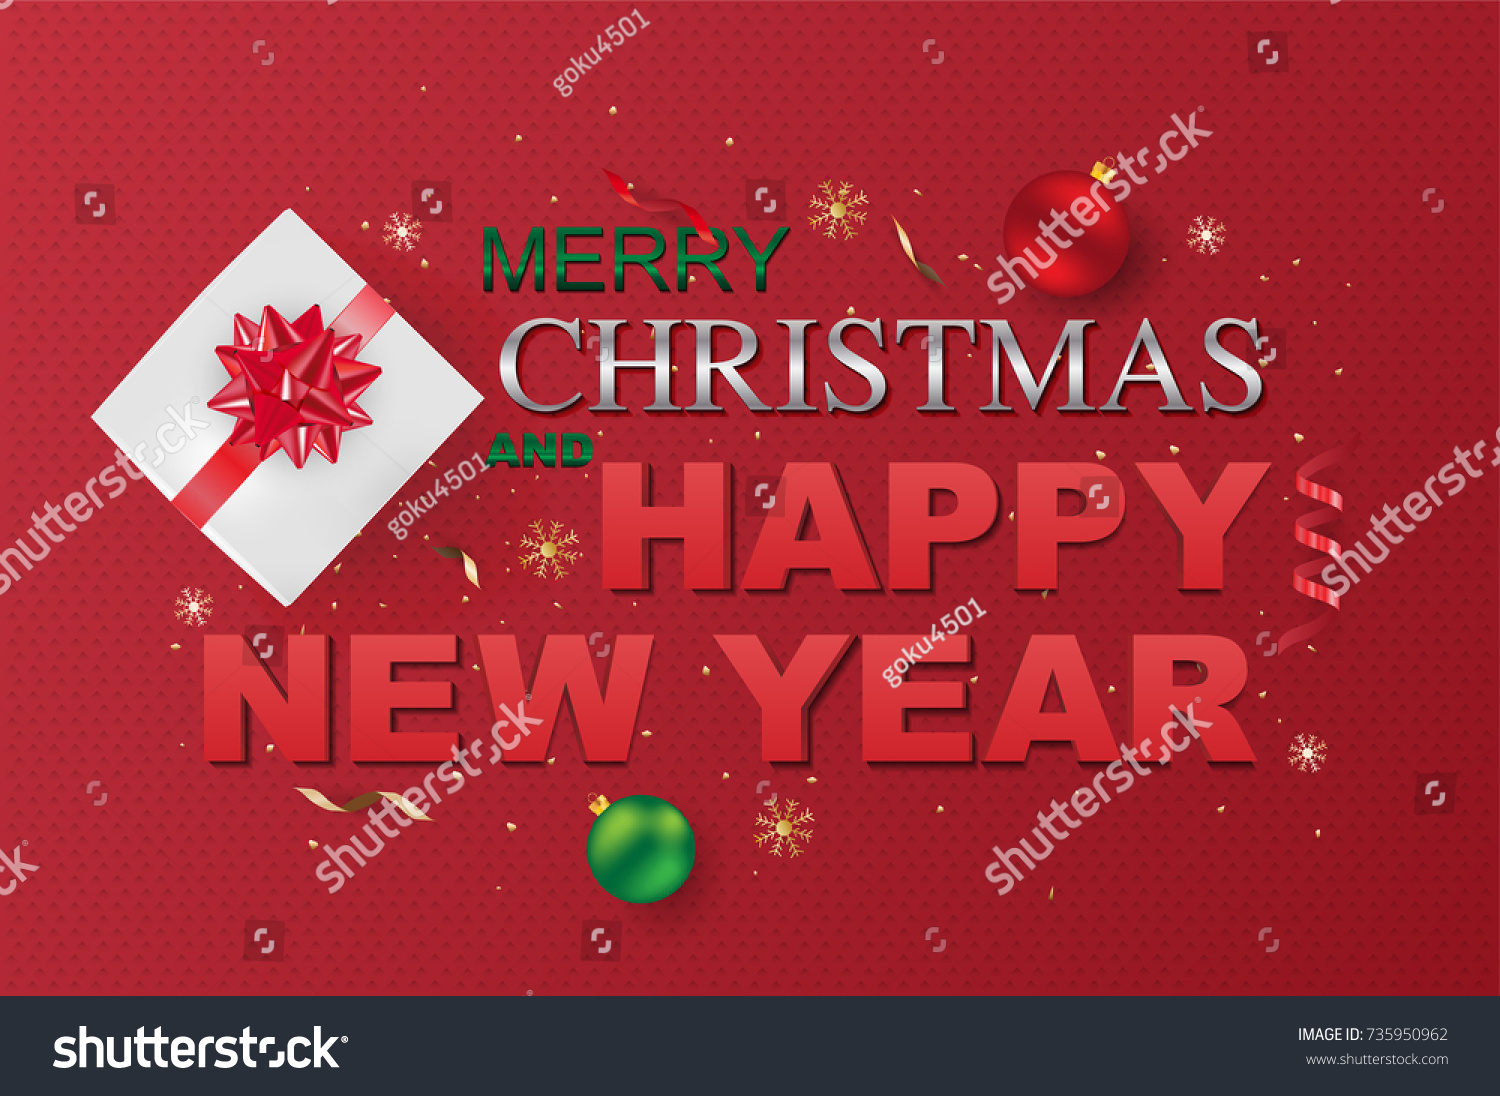 Merry Christmas Happy New Year On Stock Vector 735950962 Shutterstock